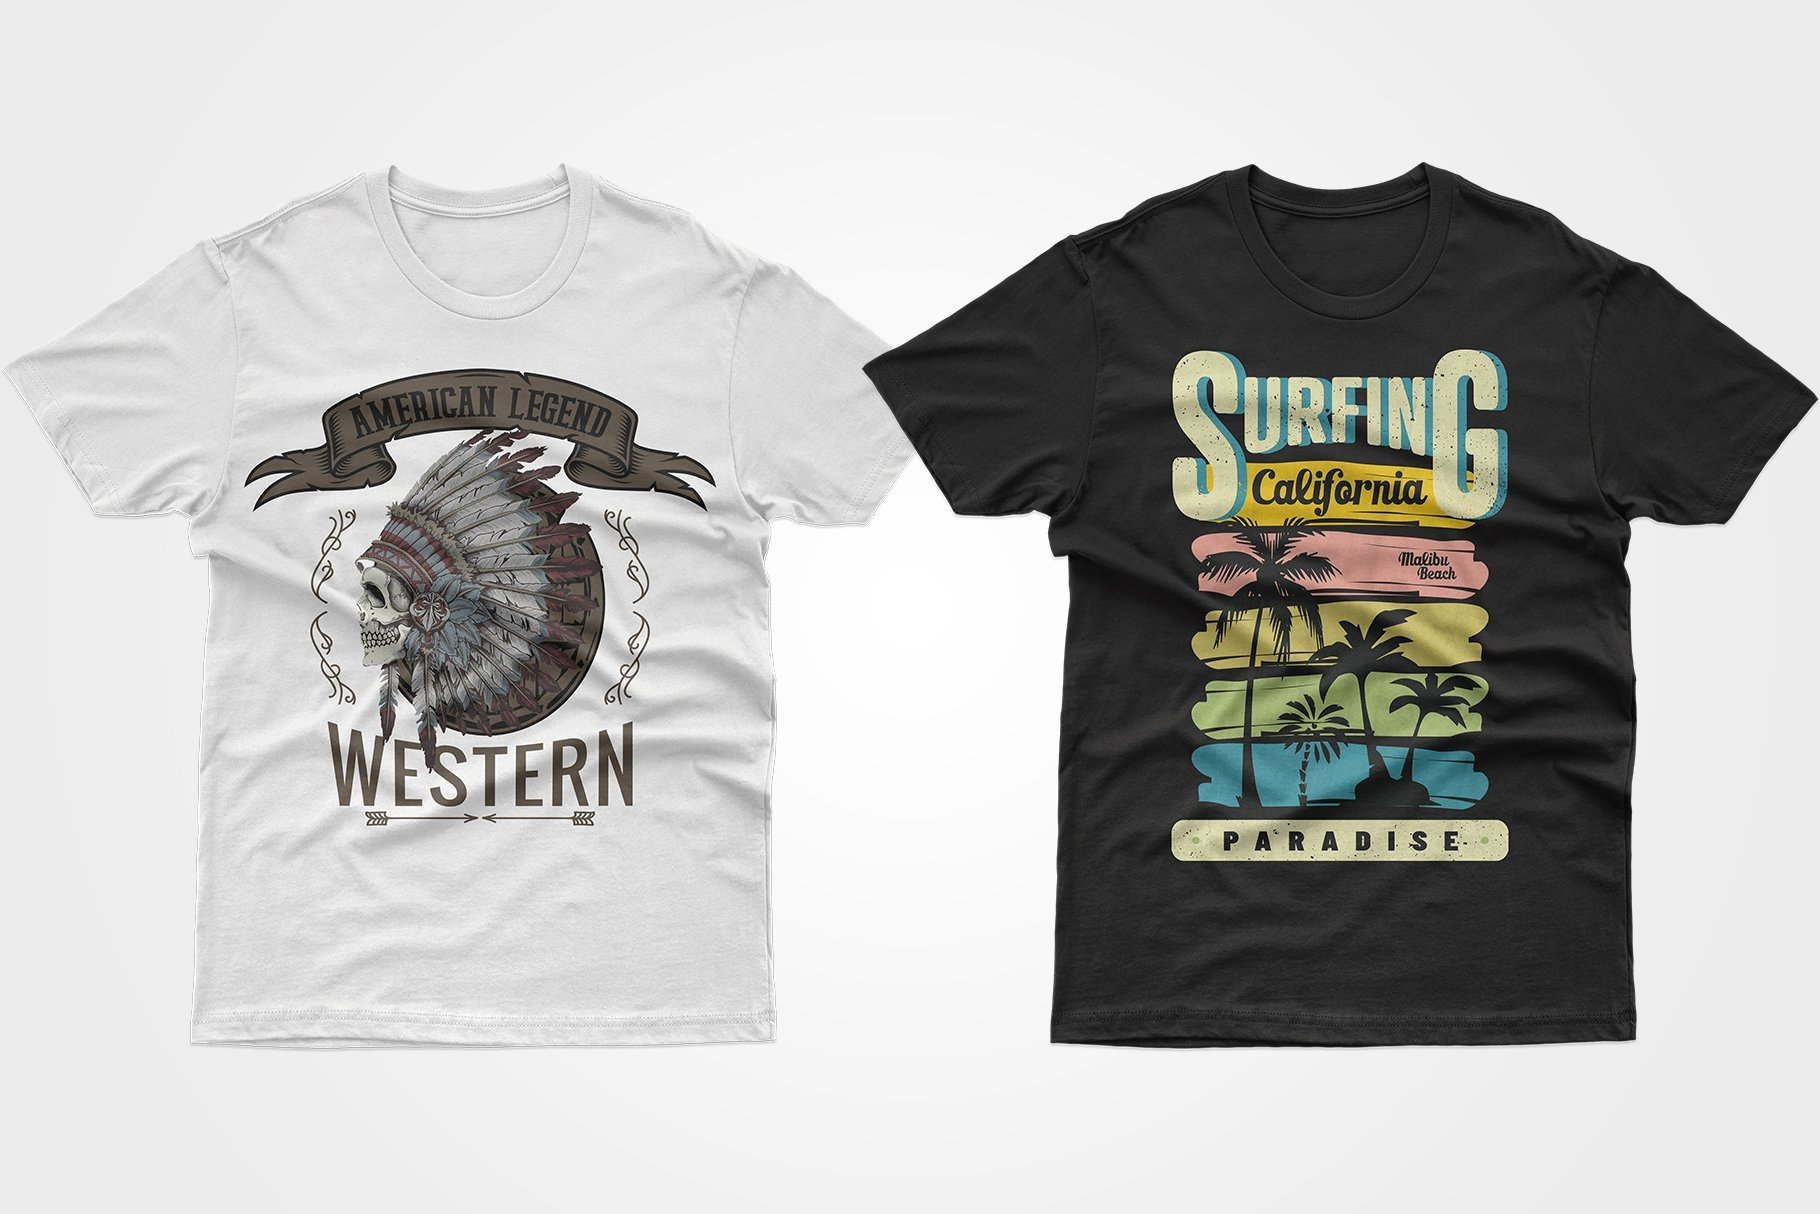 Two T-shirts - one white with a skull on the head with feathers, the other black with a California dream.